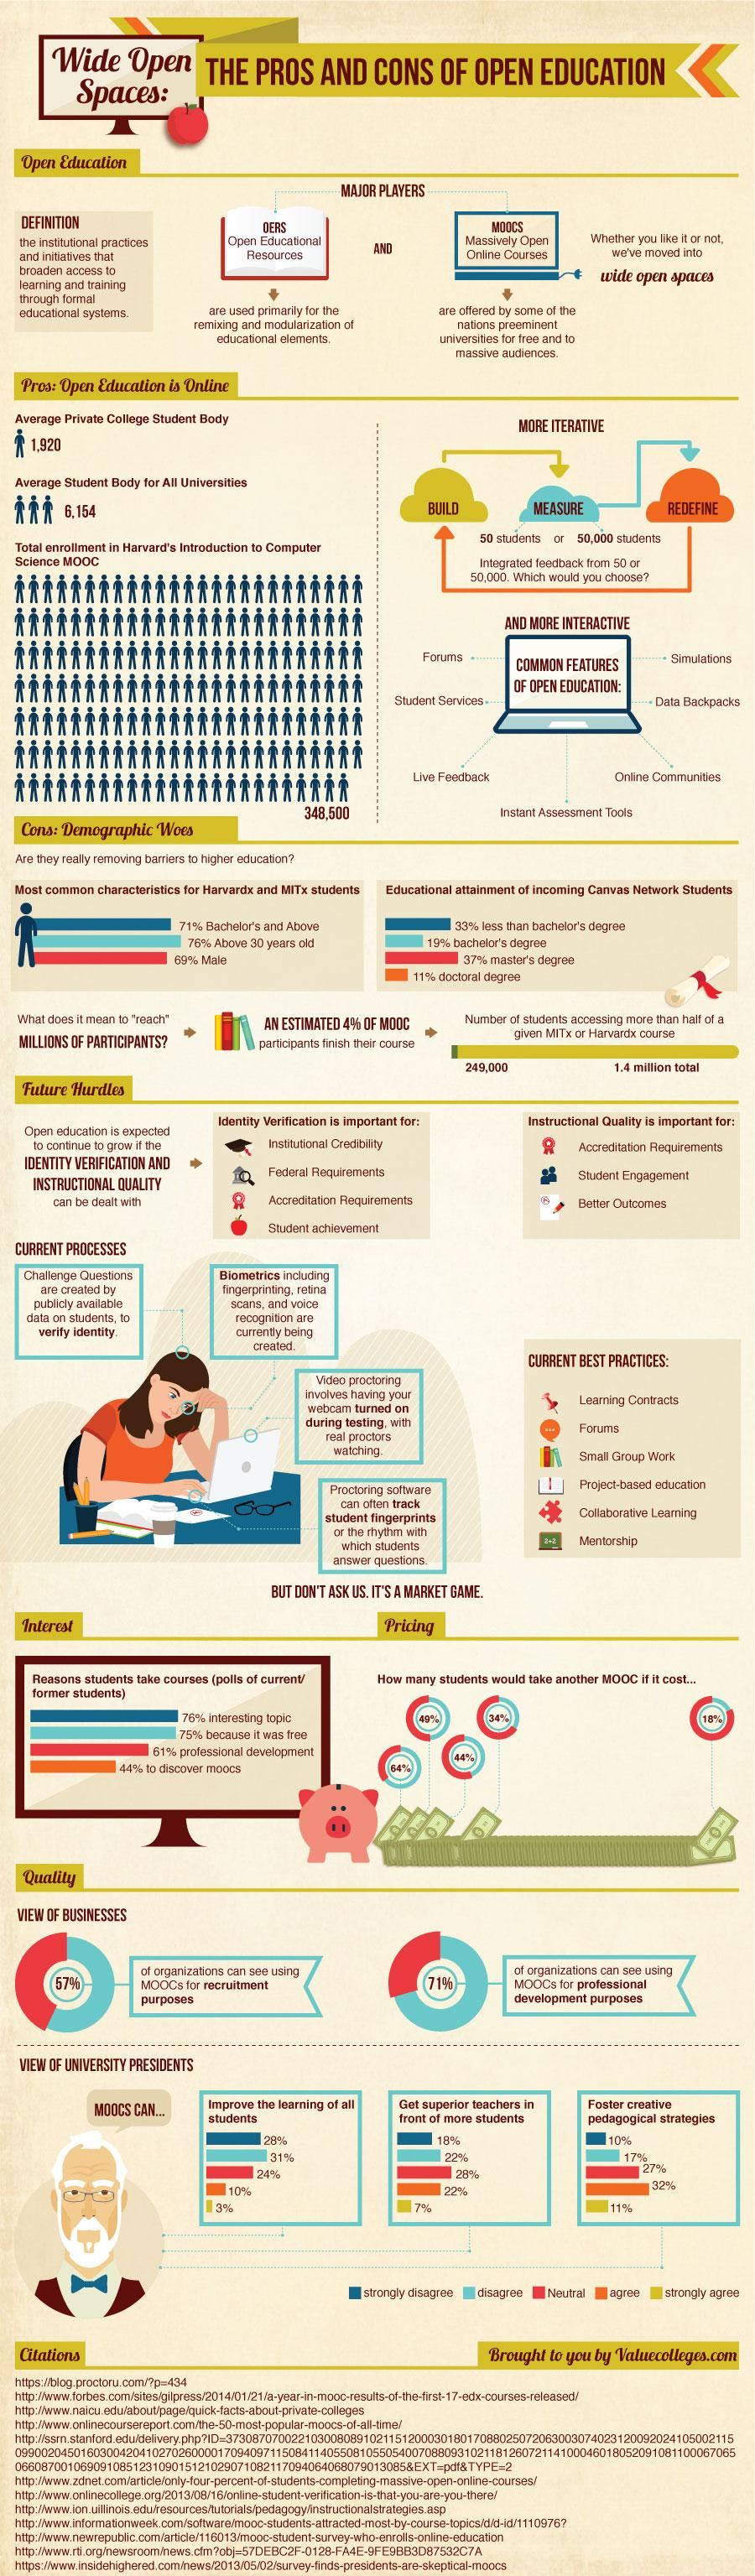 open-education-infographic